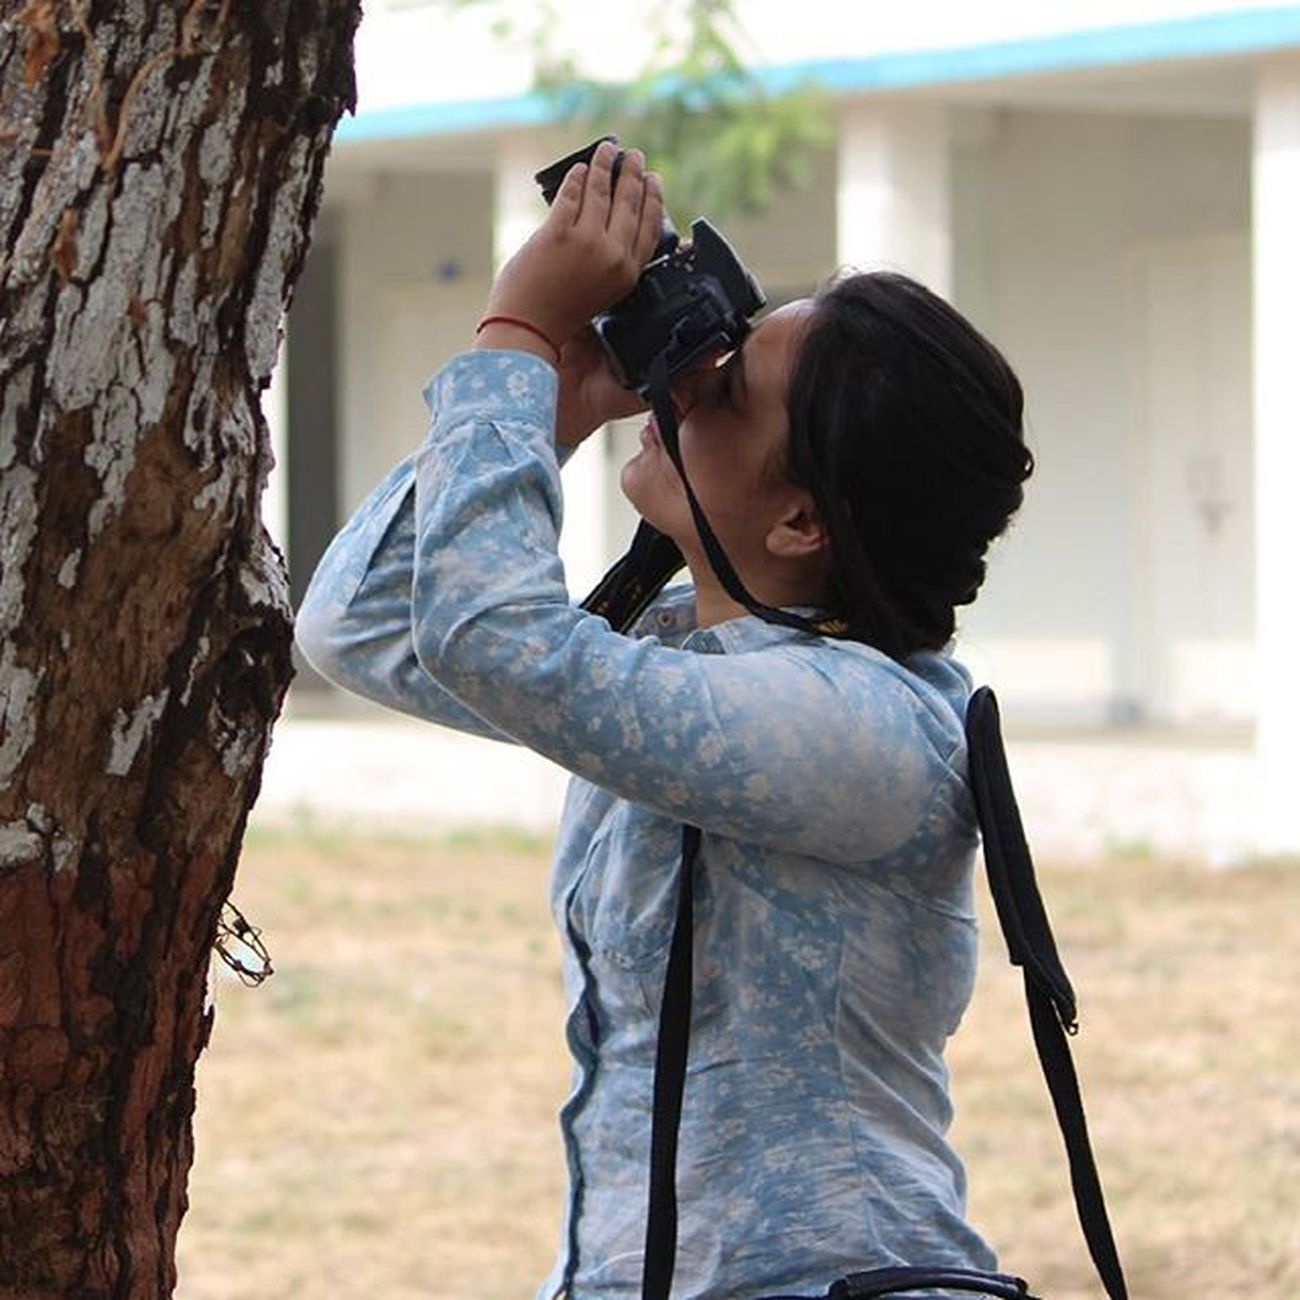 When I was lost capturing... Thank you :) Loveforphotography Nikond5300 Nikoninsta Nikon Loveit Passion Photooftheday Photographer Canonclick Awesome Lost Perfectday Nikon_photography_ Instalike Instagram Bhopaldiaries Bhopal Manit Collegelife